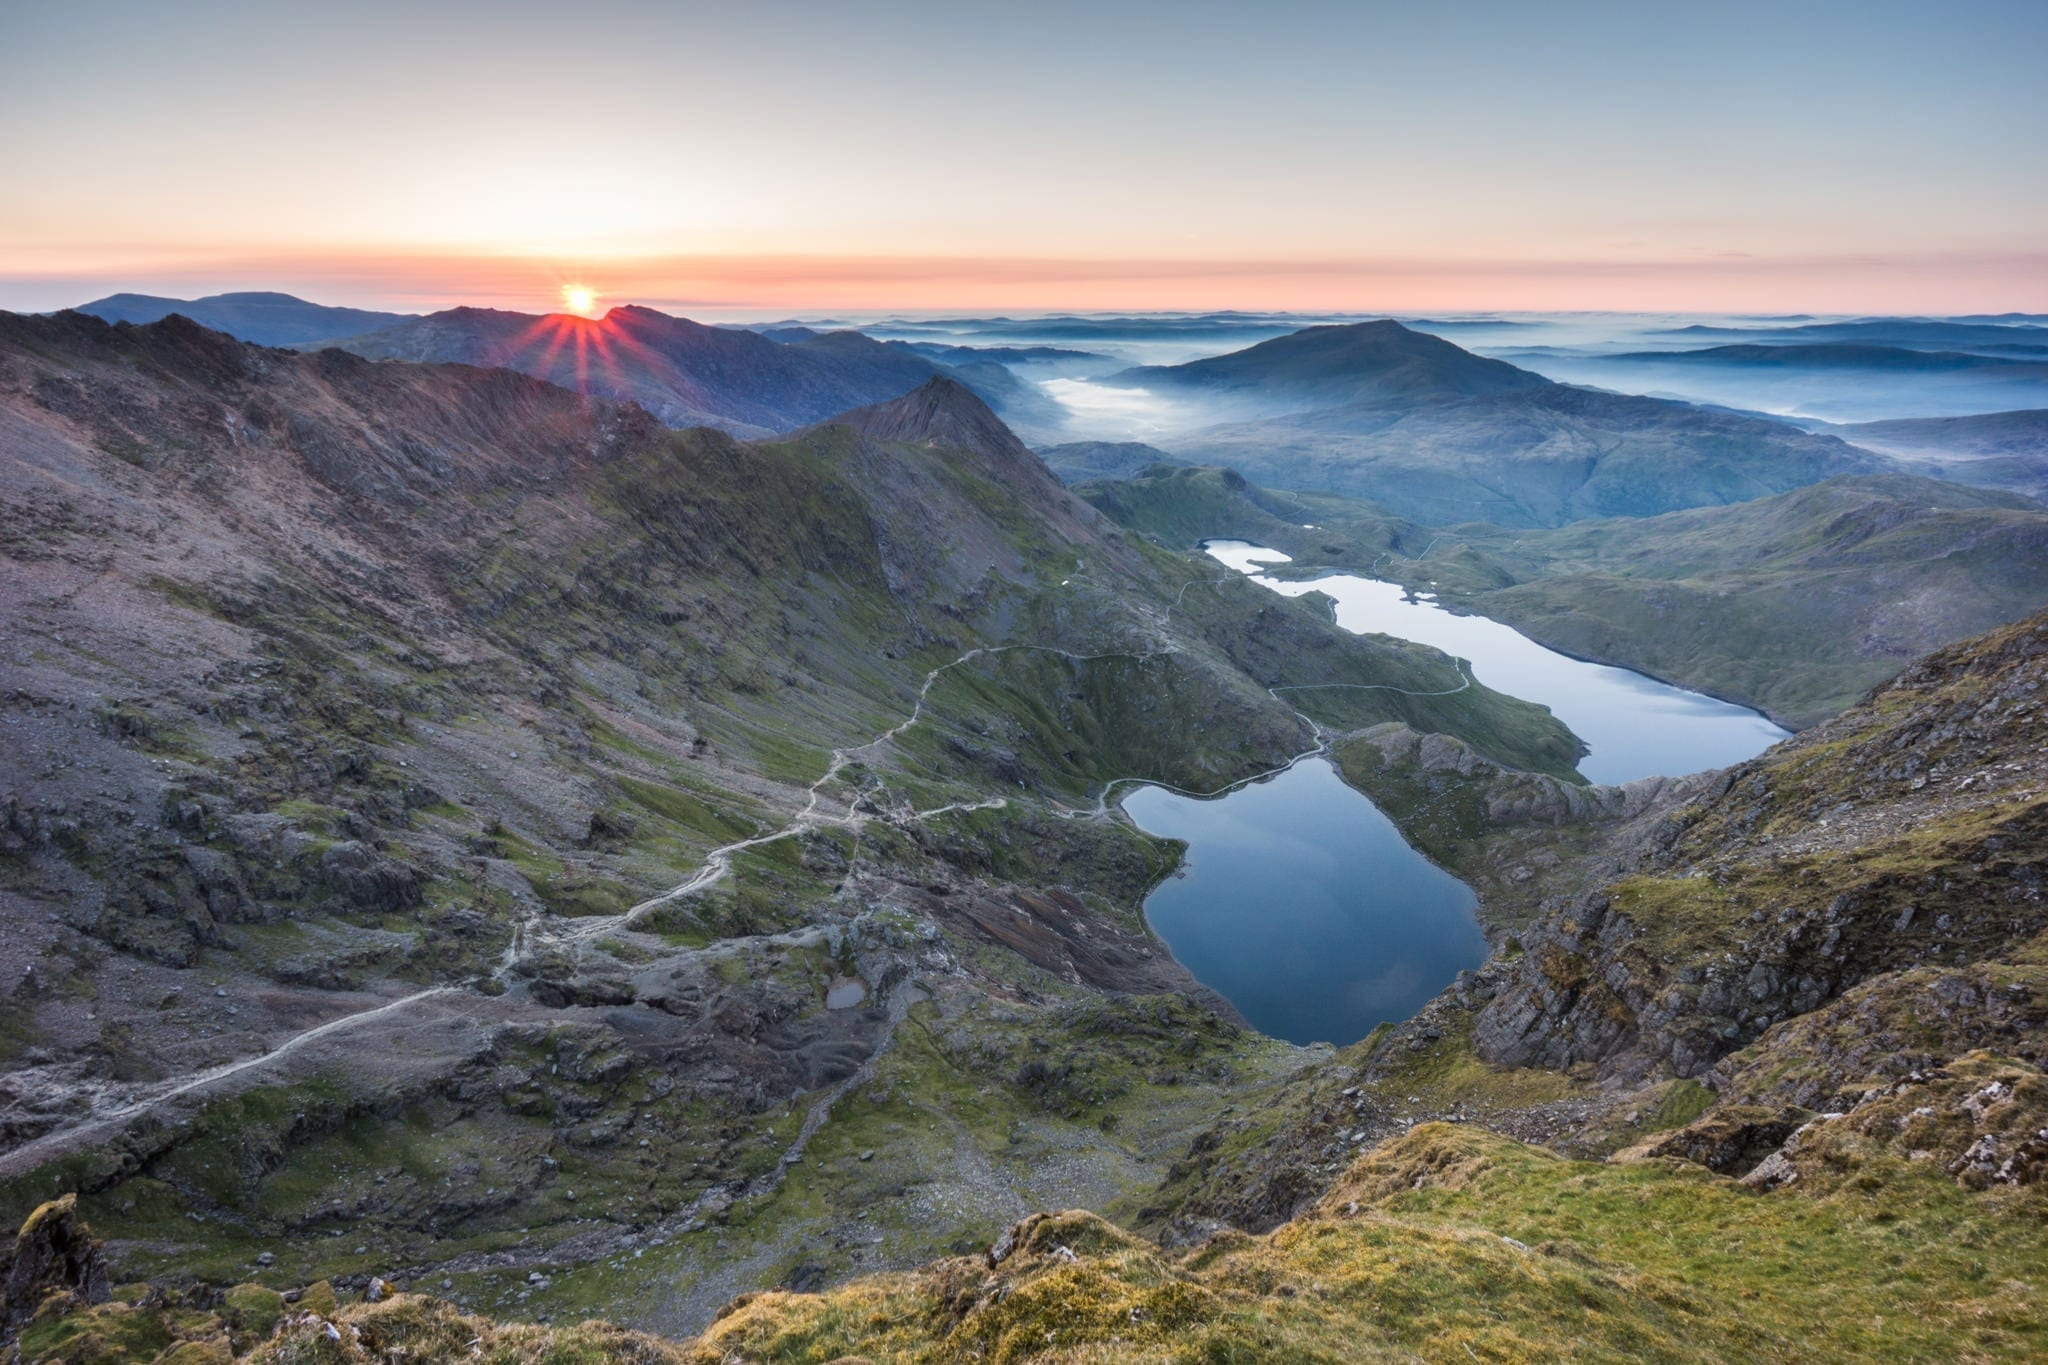 Snowdon Sunrise - Wild Camping Photography Workshop